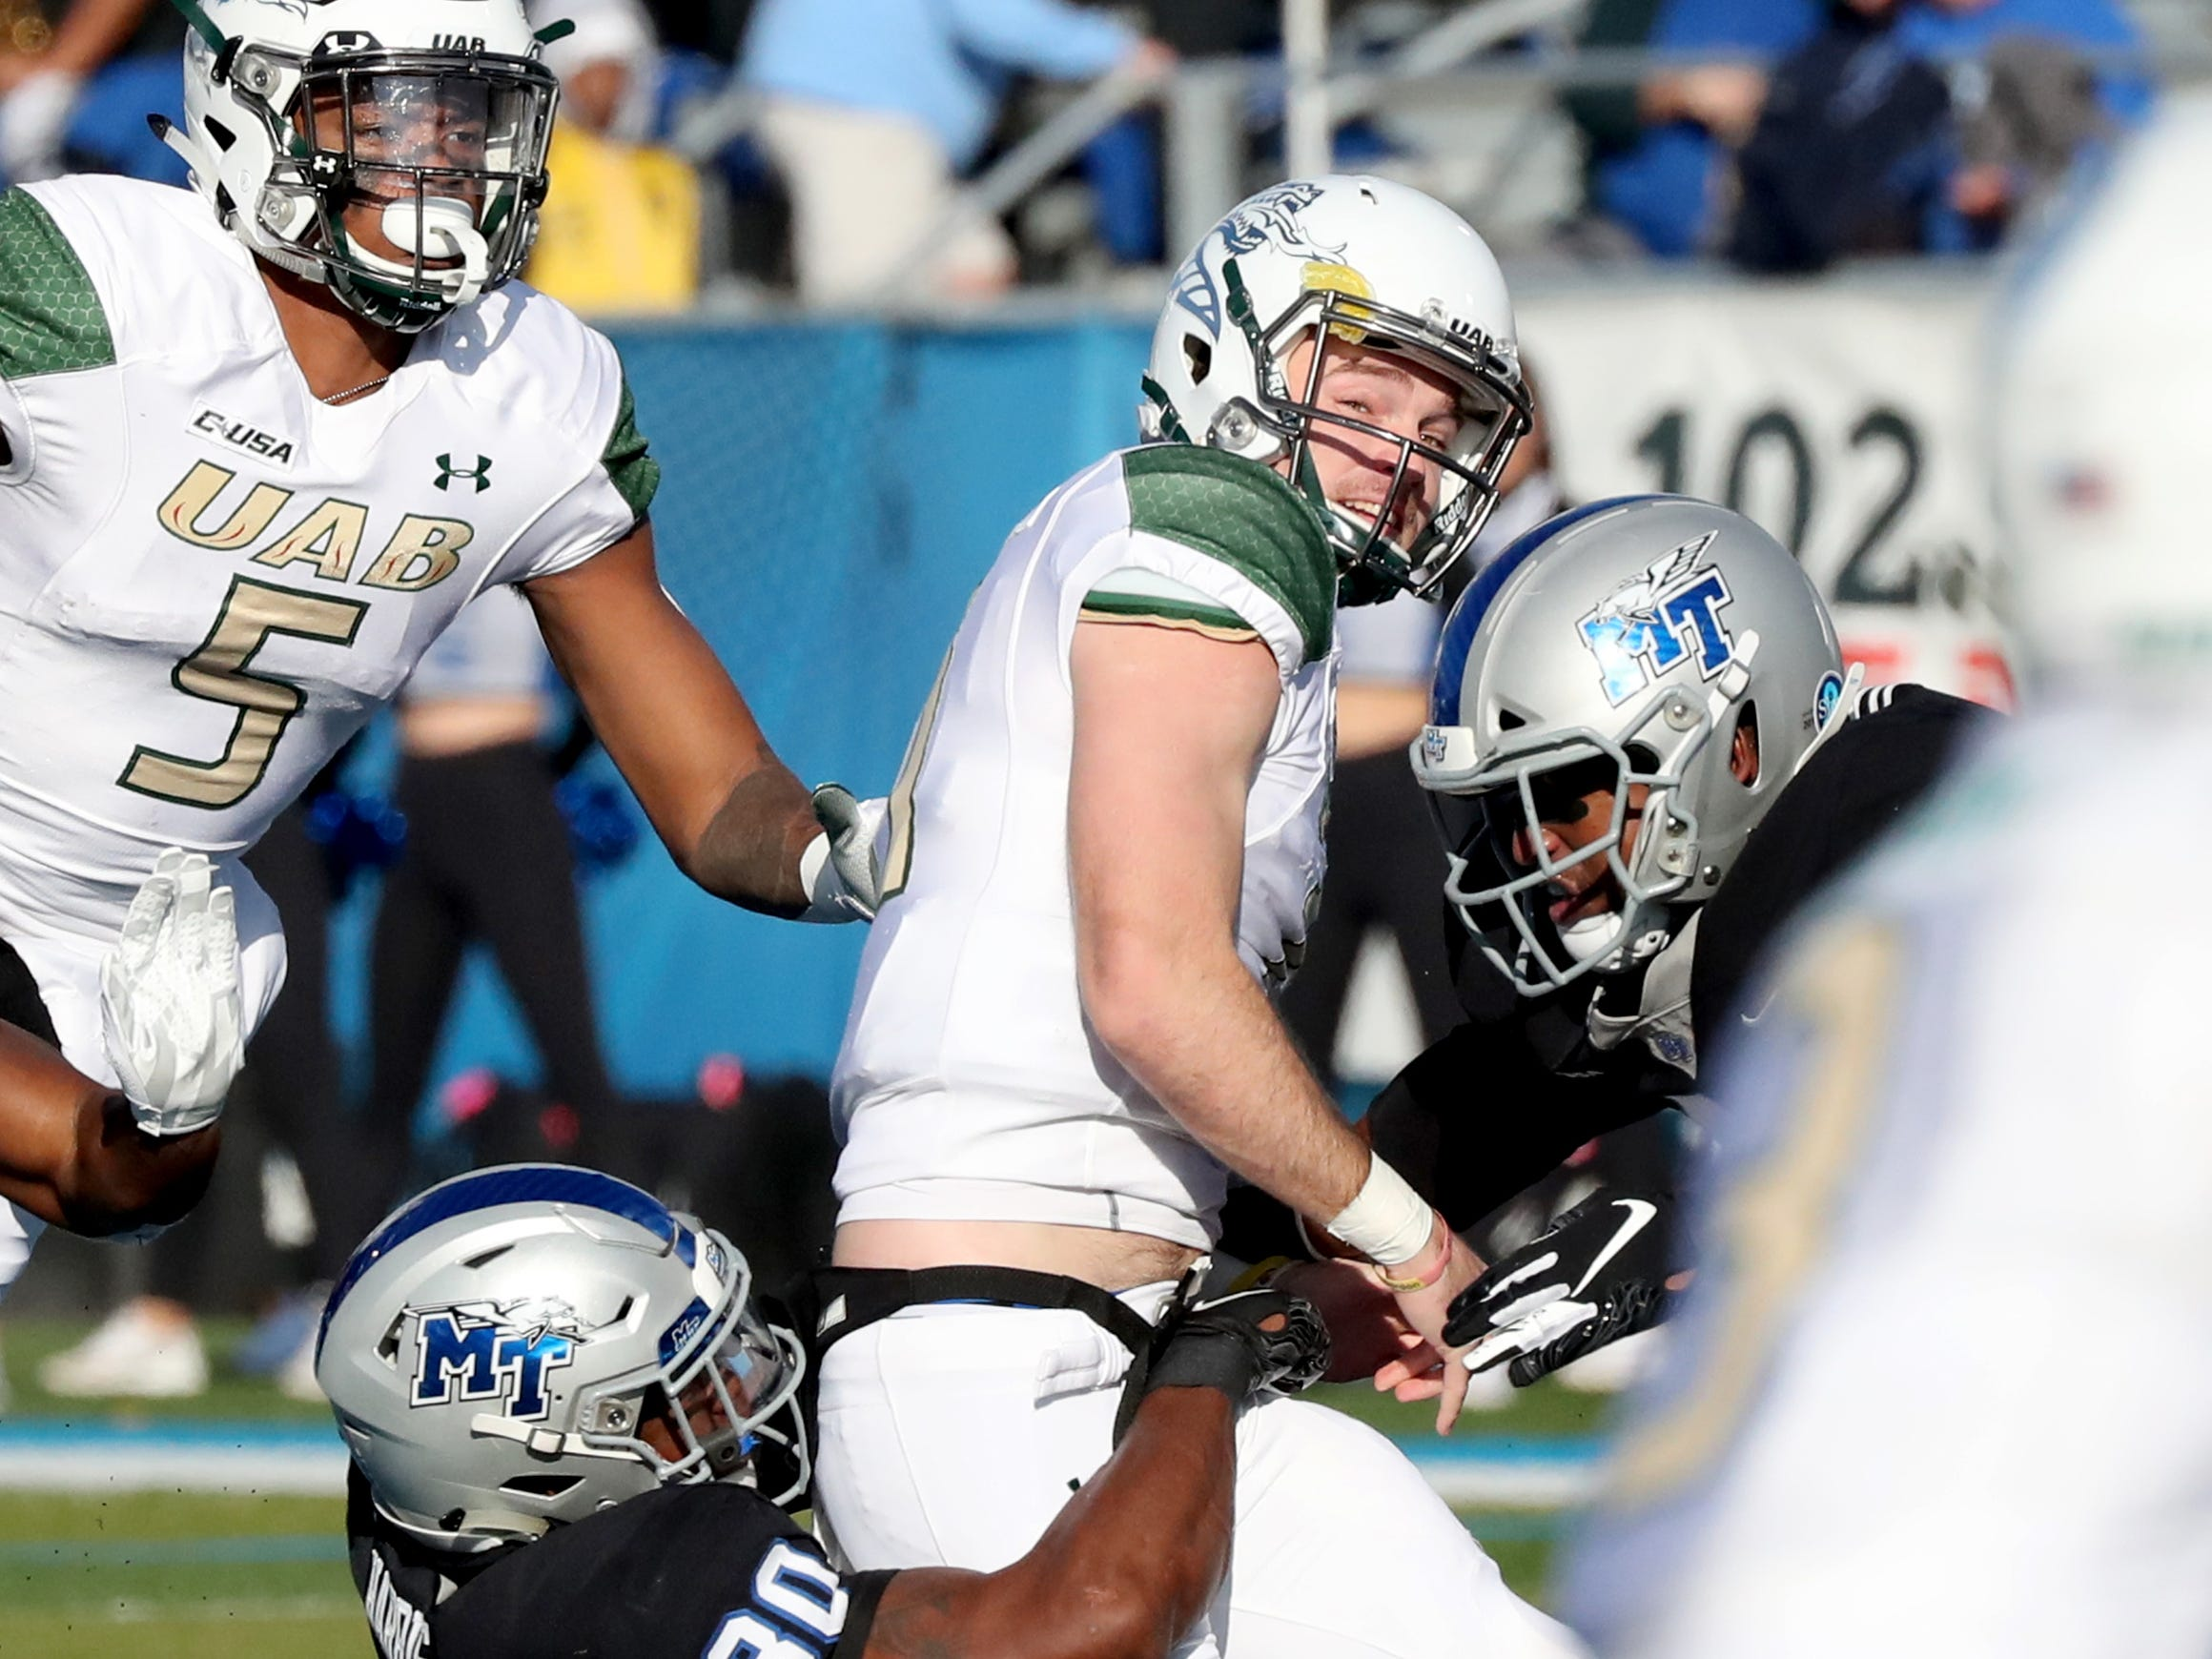 UAB's quarterback AJ Erdely (11) watches hs pass as MTSU's Darius Harris (30) grabs him from behind during the game at MTSU on Saturday, Nov. 24, 2018.